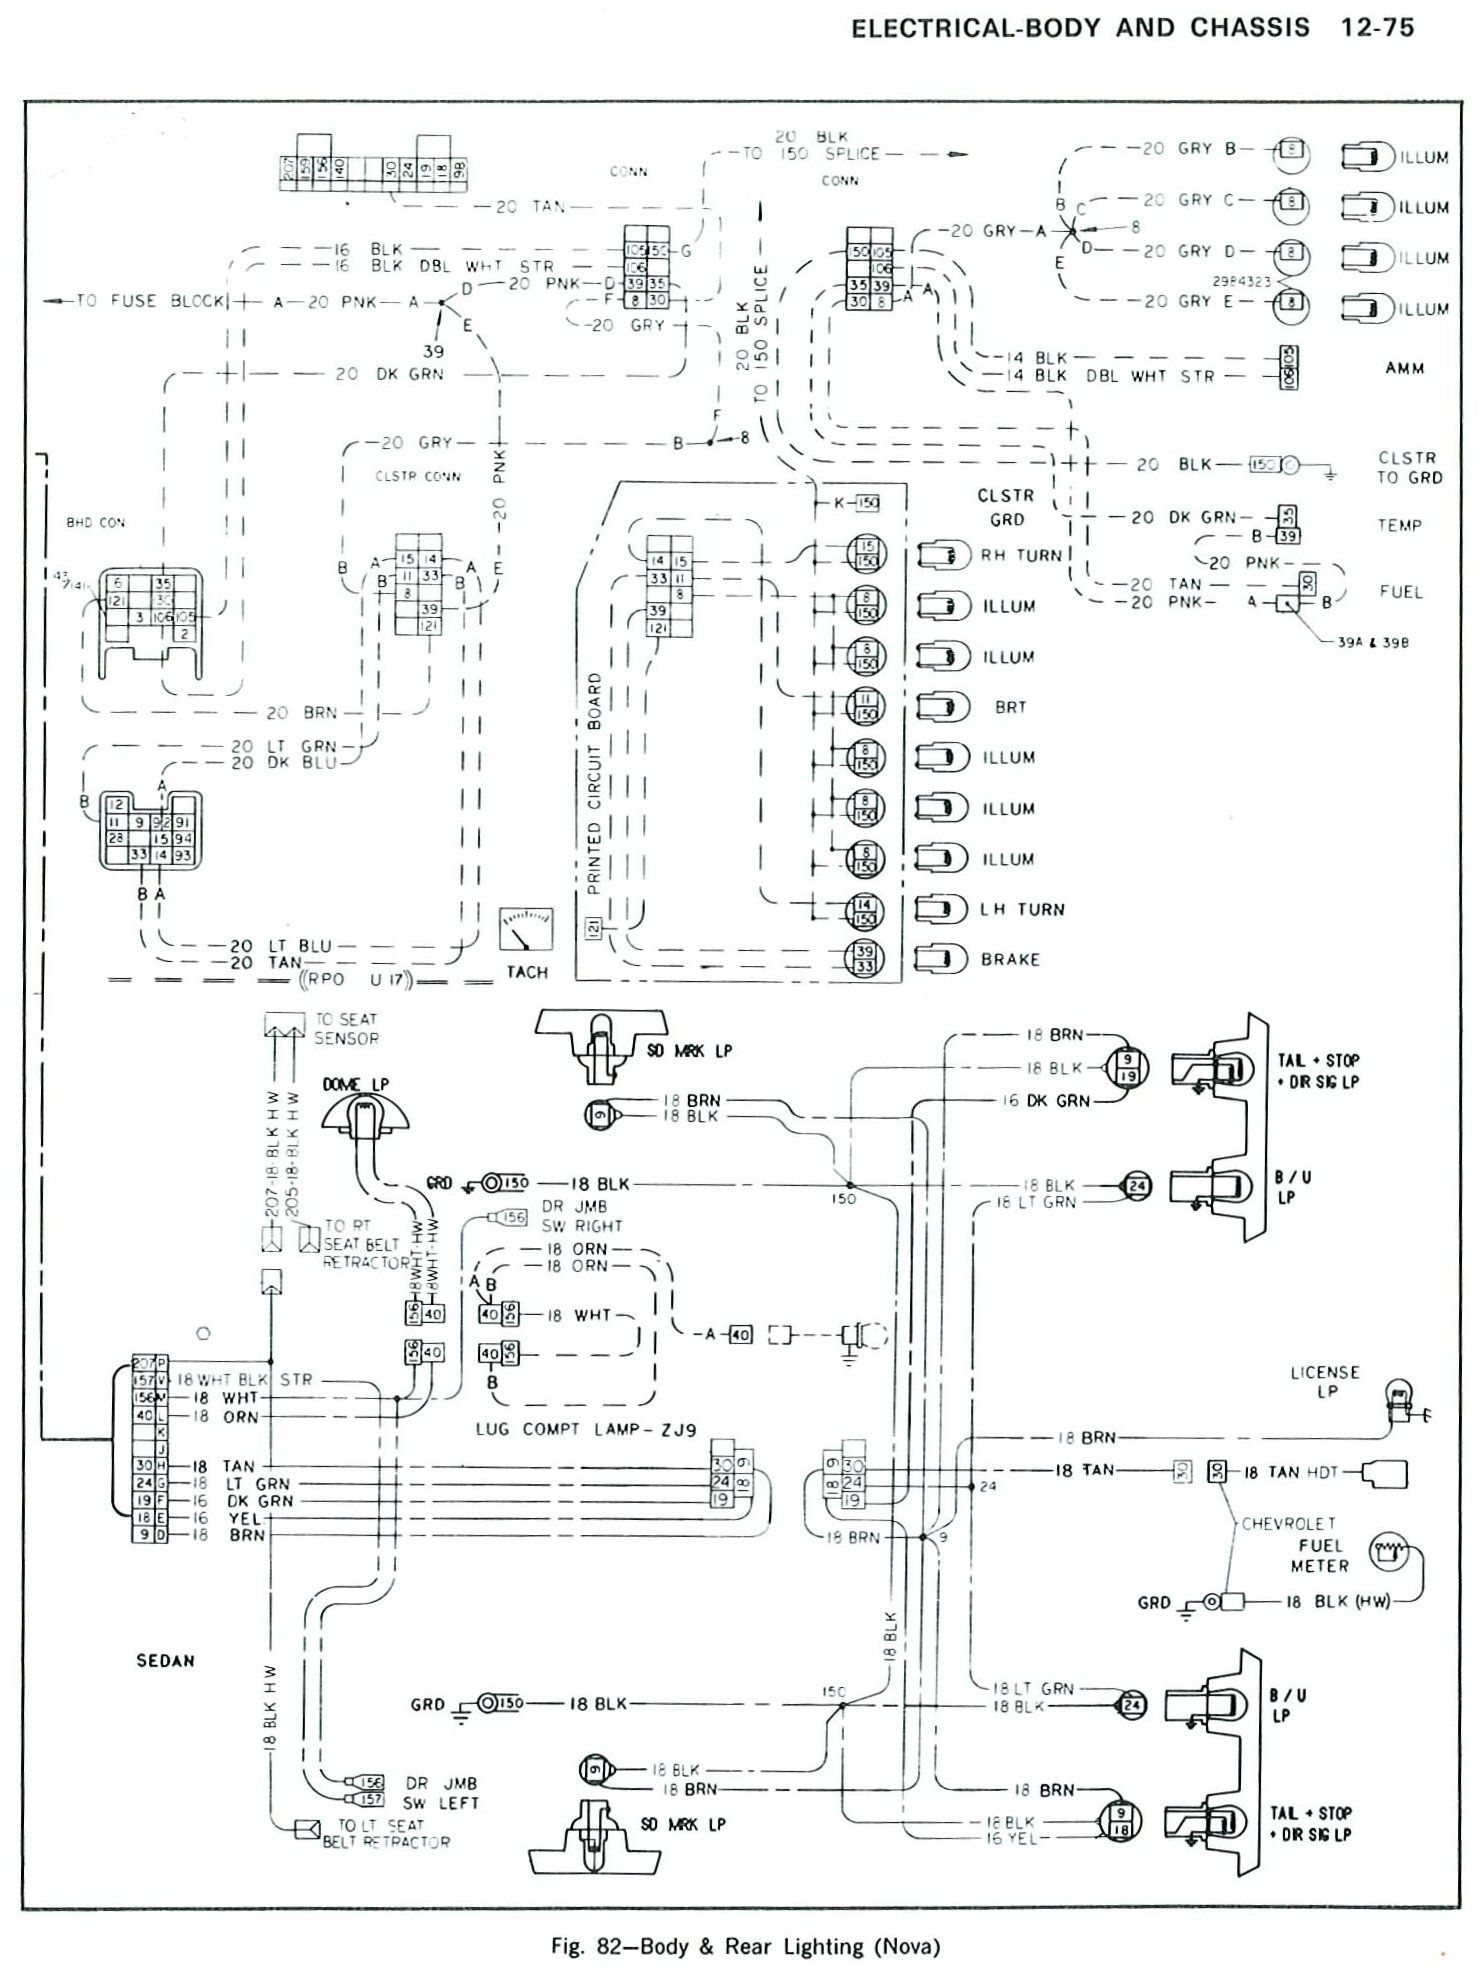 73 caprice wiring diagram 85 chevy truck wiring diagram | ... looking at the wiring ...